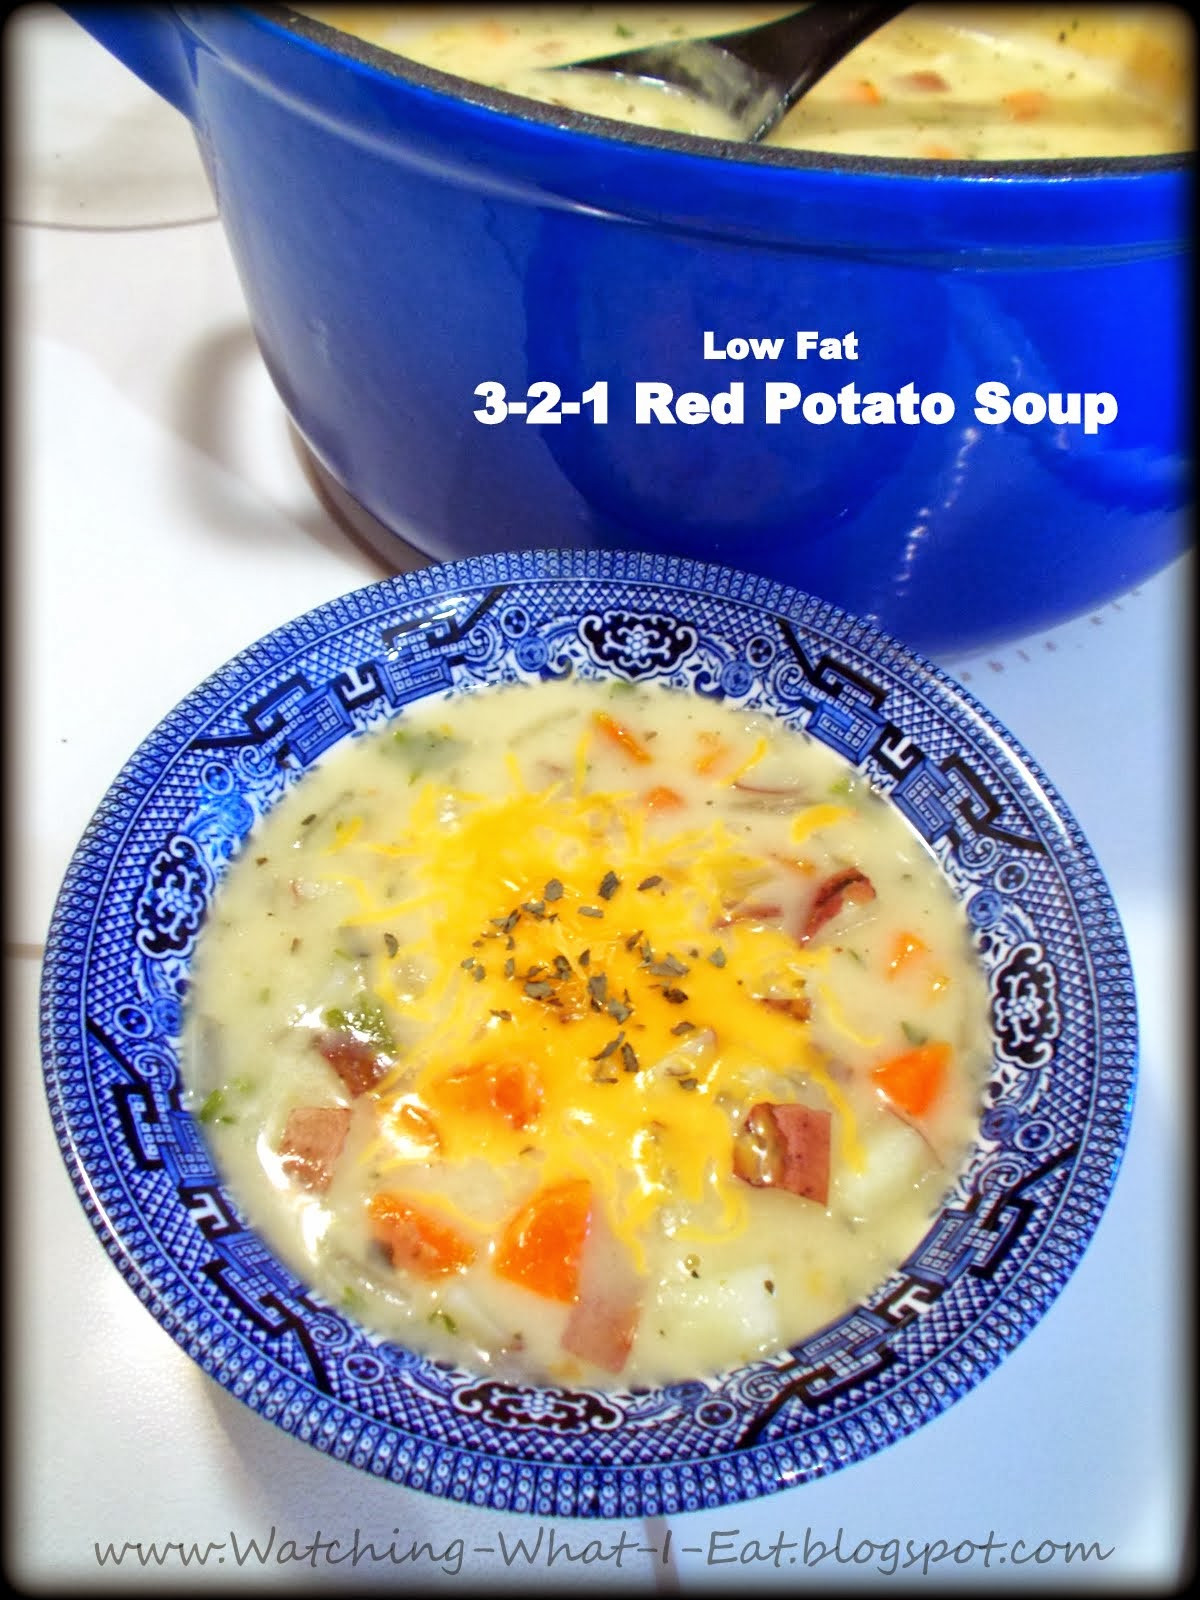 Red Potato Soup  Watching What I Eat 3 2 1 Red Potato Soup low fat